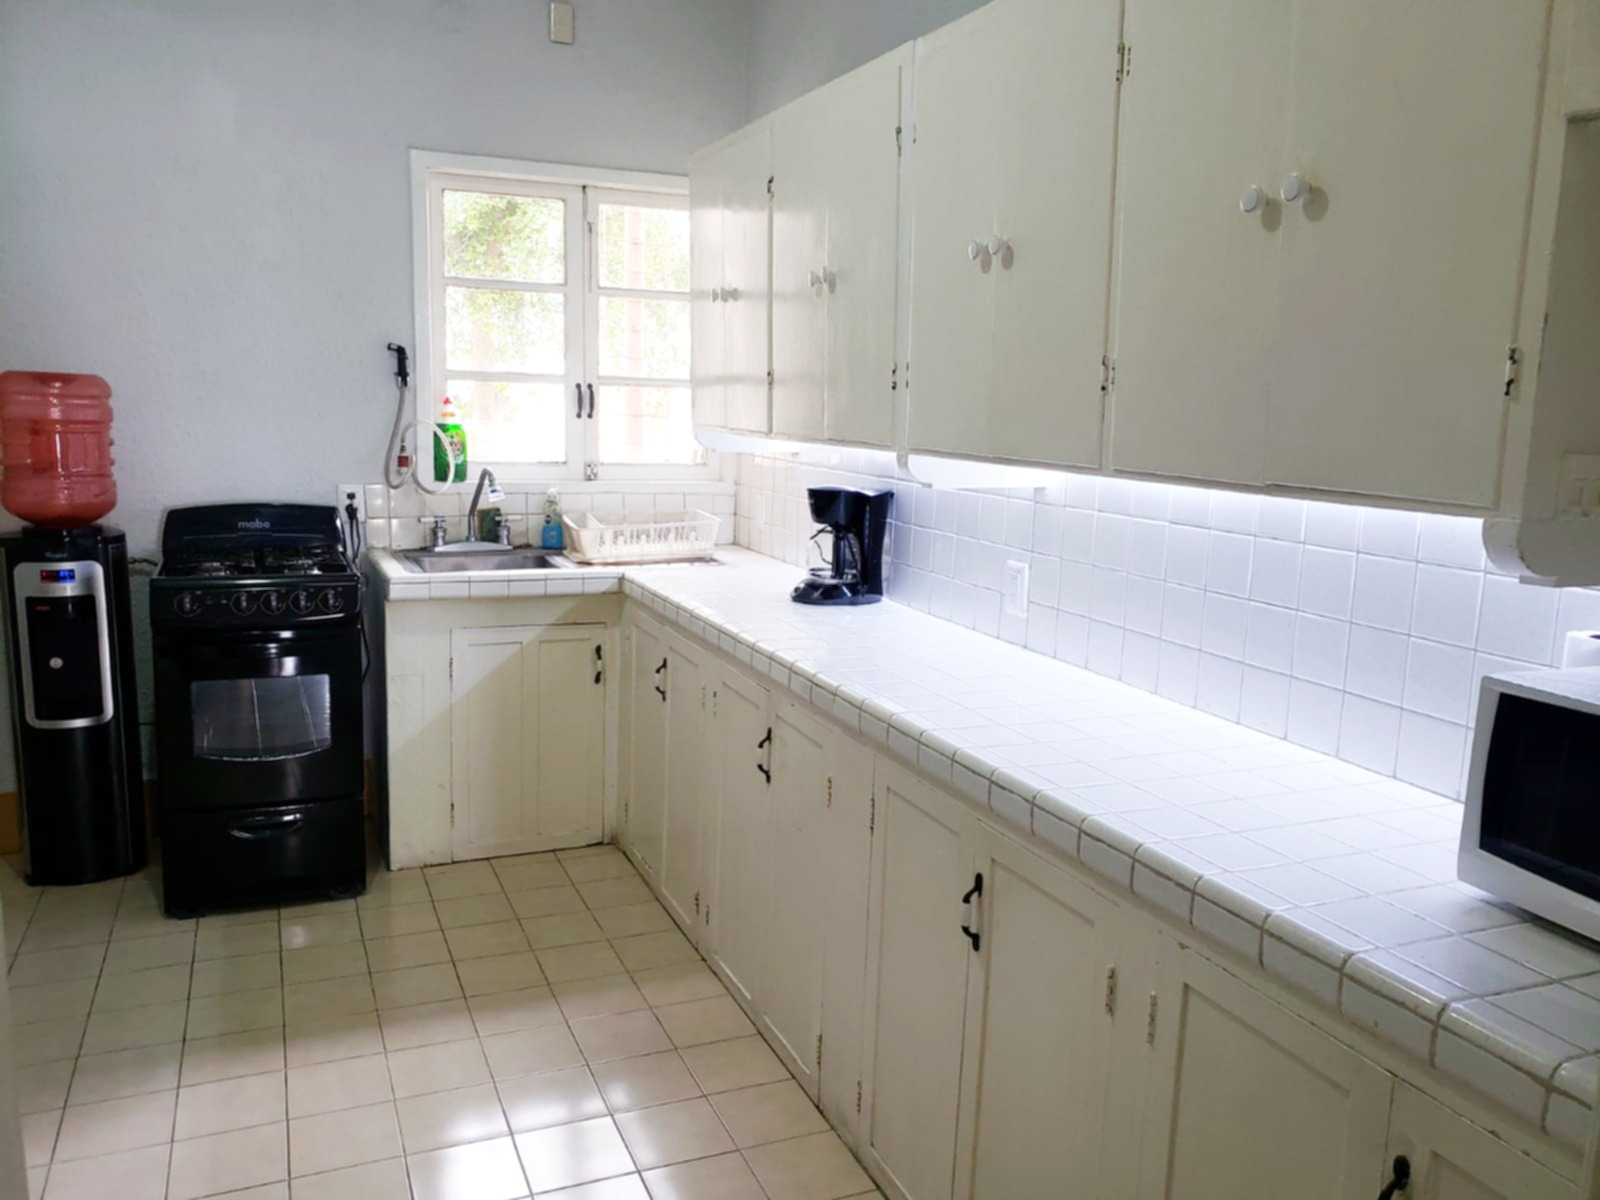 Kitchen with gas stove and oven.